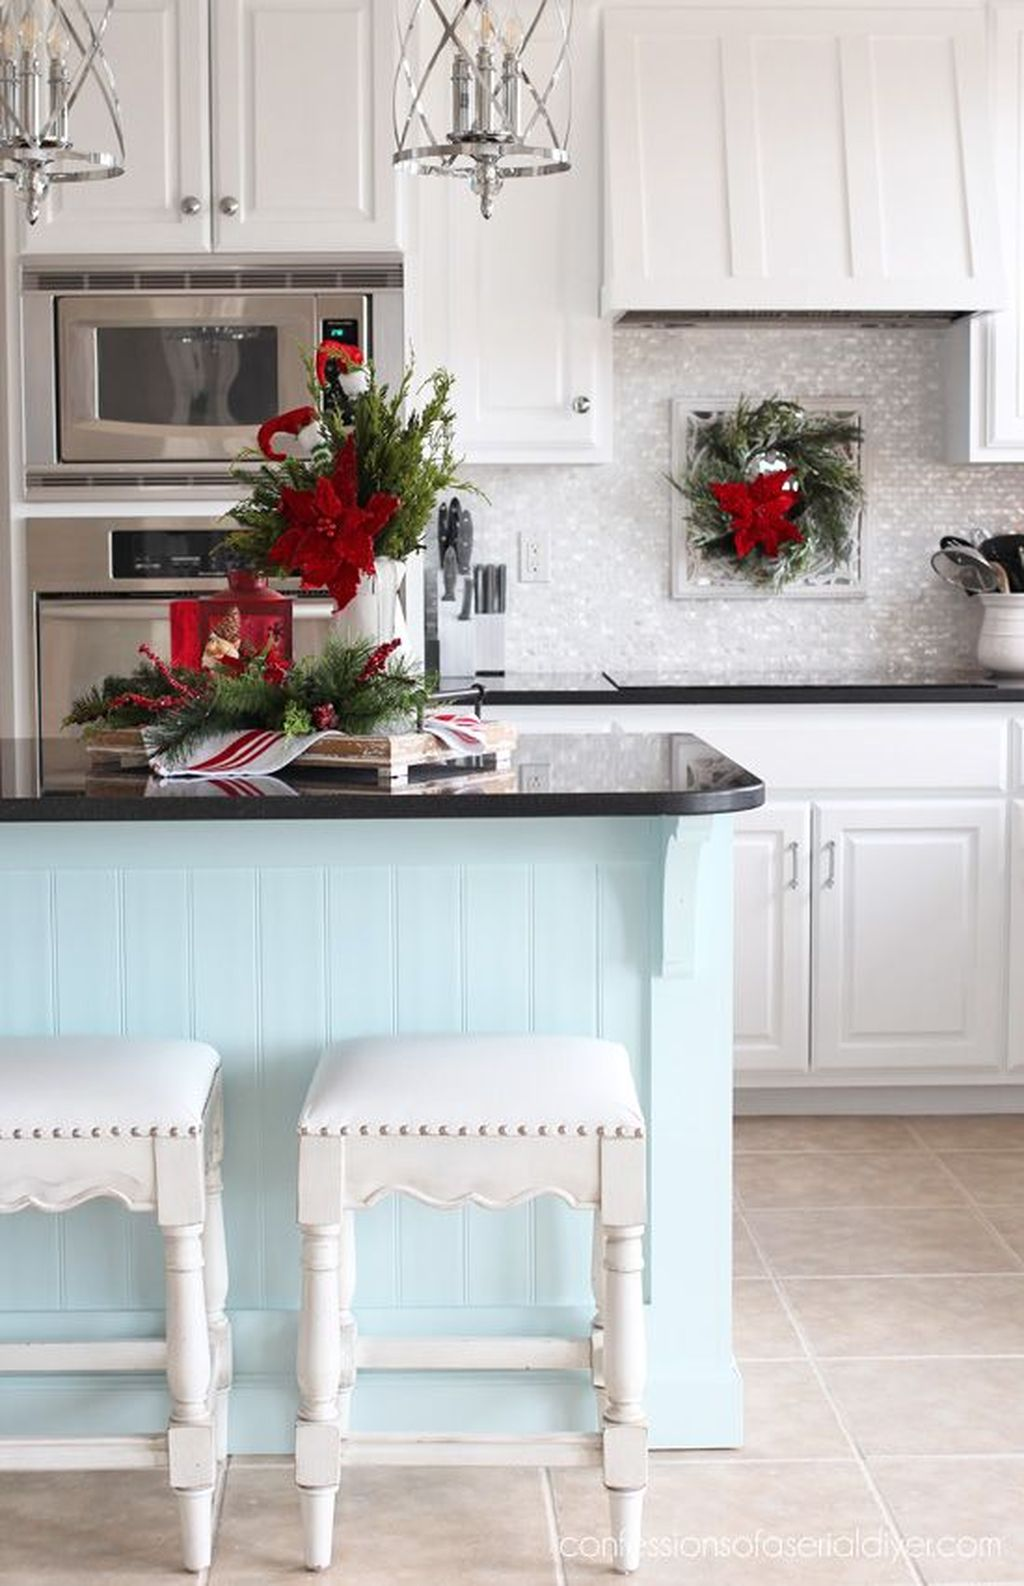 Popular Christmas Decor Ideas For Kitchen Island 30